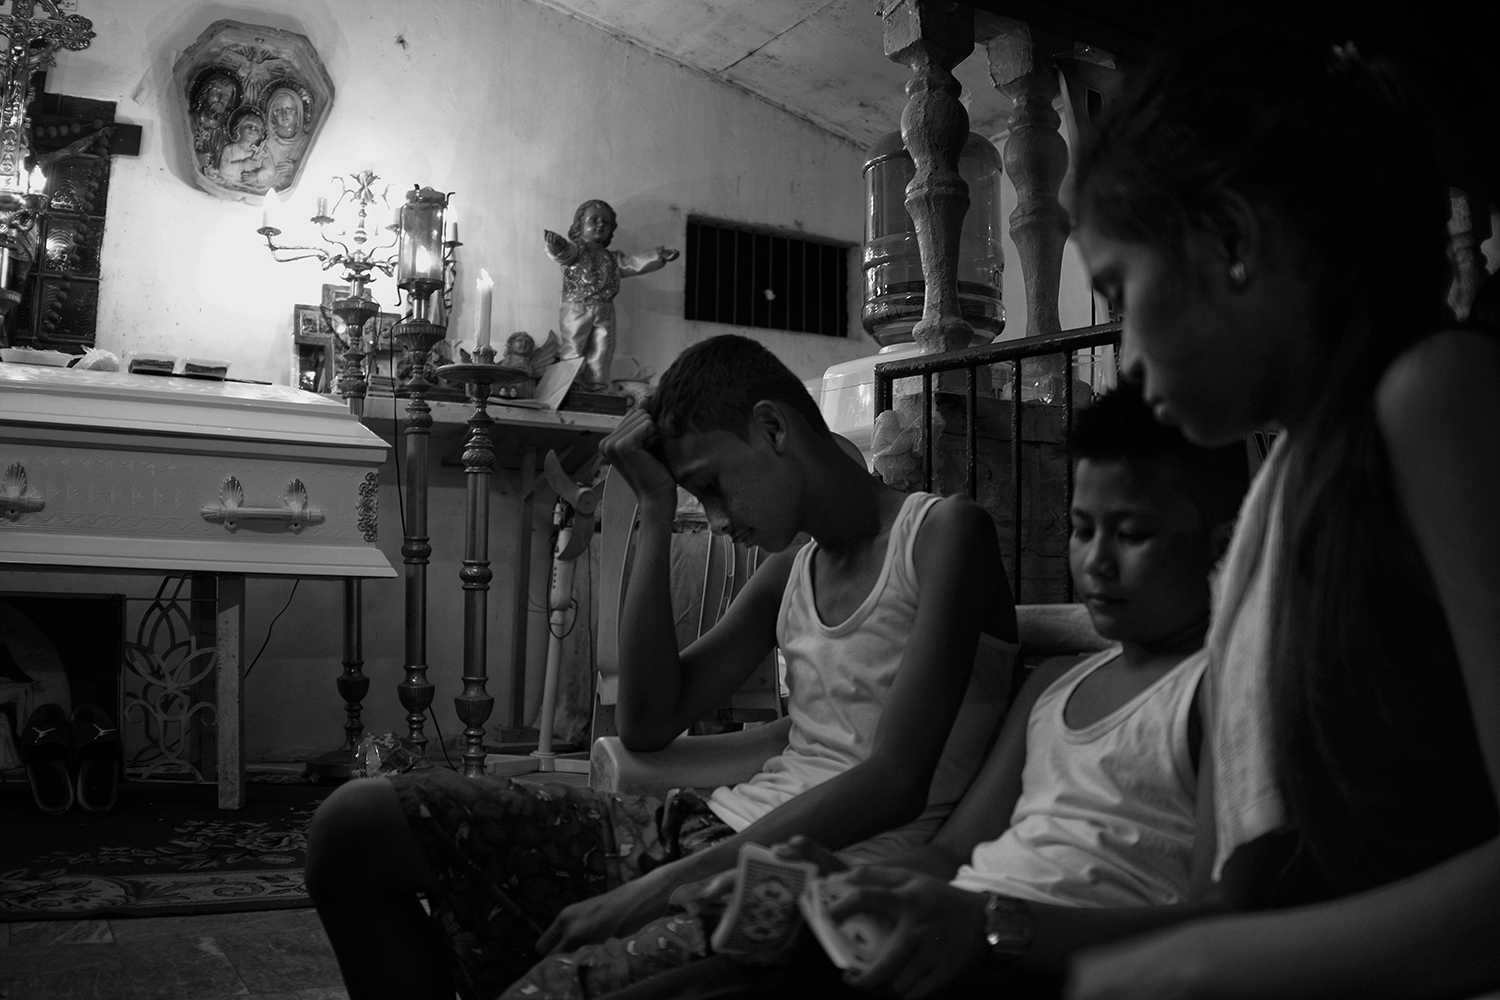 Art and Documentary Photography - Loading jesaznar_Phillippines_Drug_War0824201605.jpg